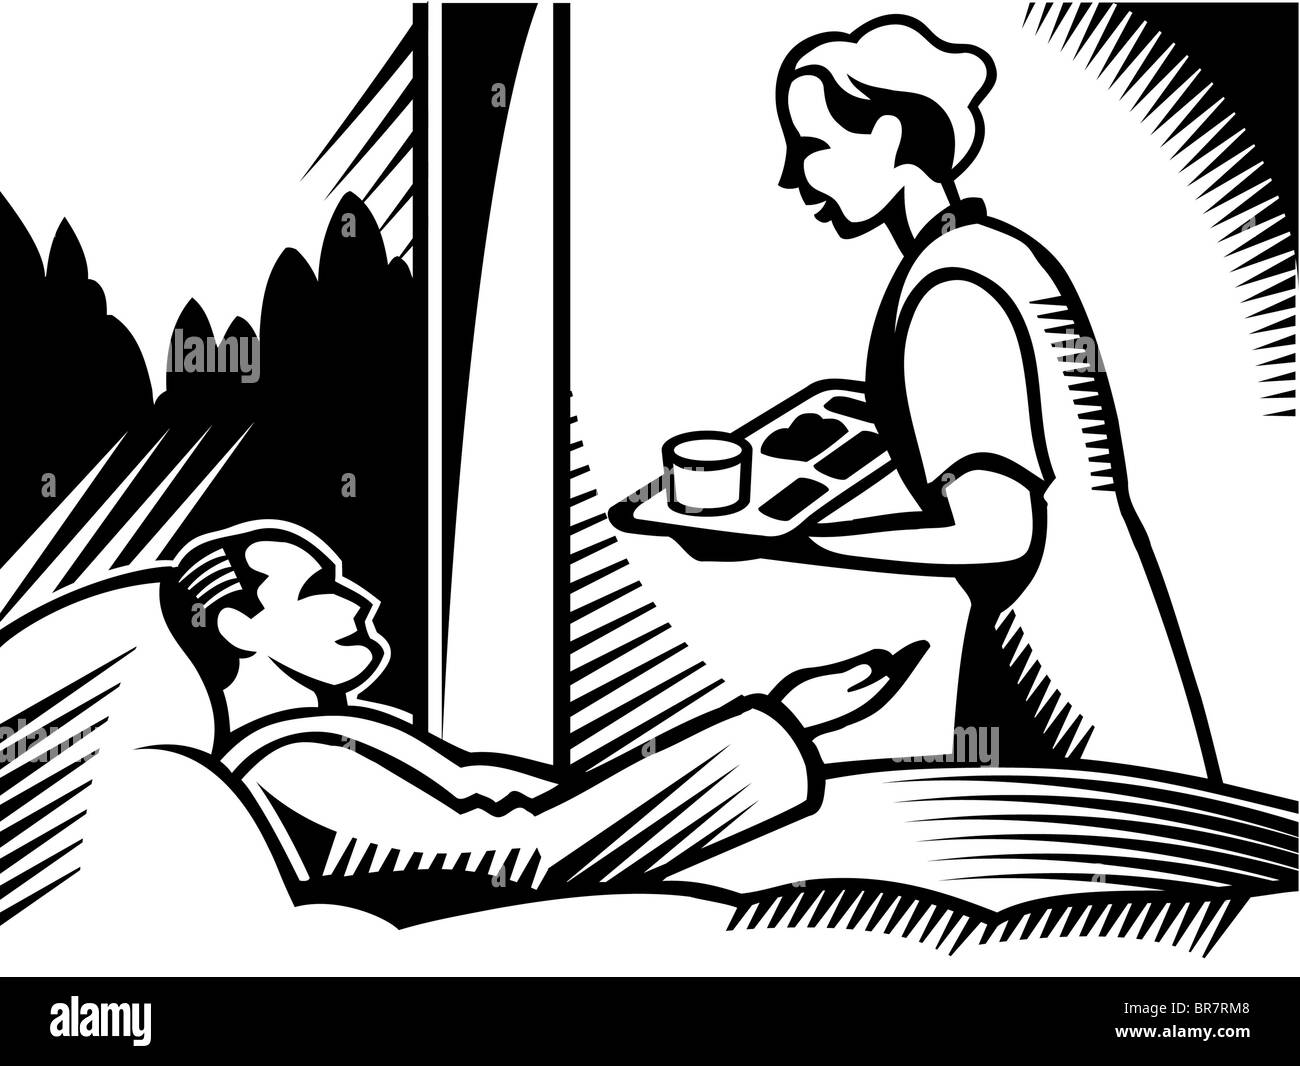 caring nurse black and white stock photos images alamy Nurse Call Bell Phone a drawing of a nurse bringing food to a patient in black and white stock